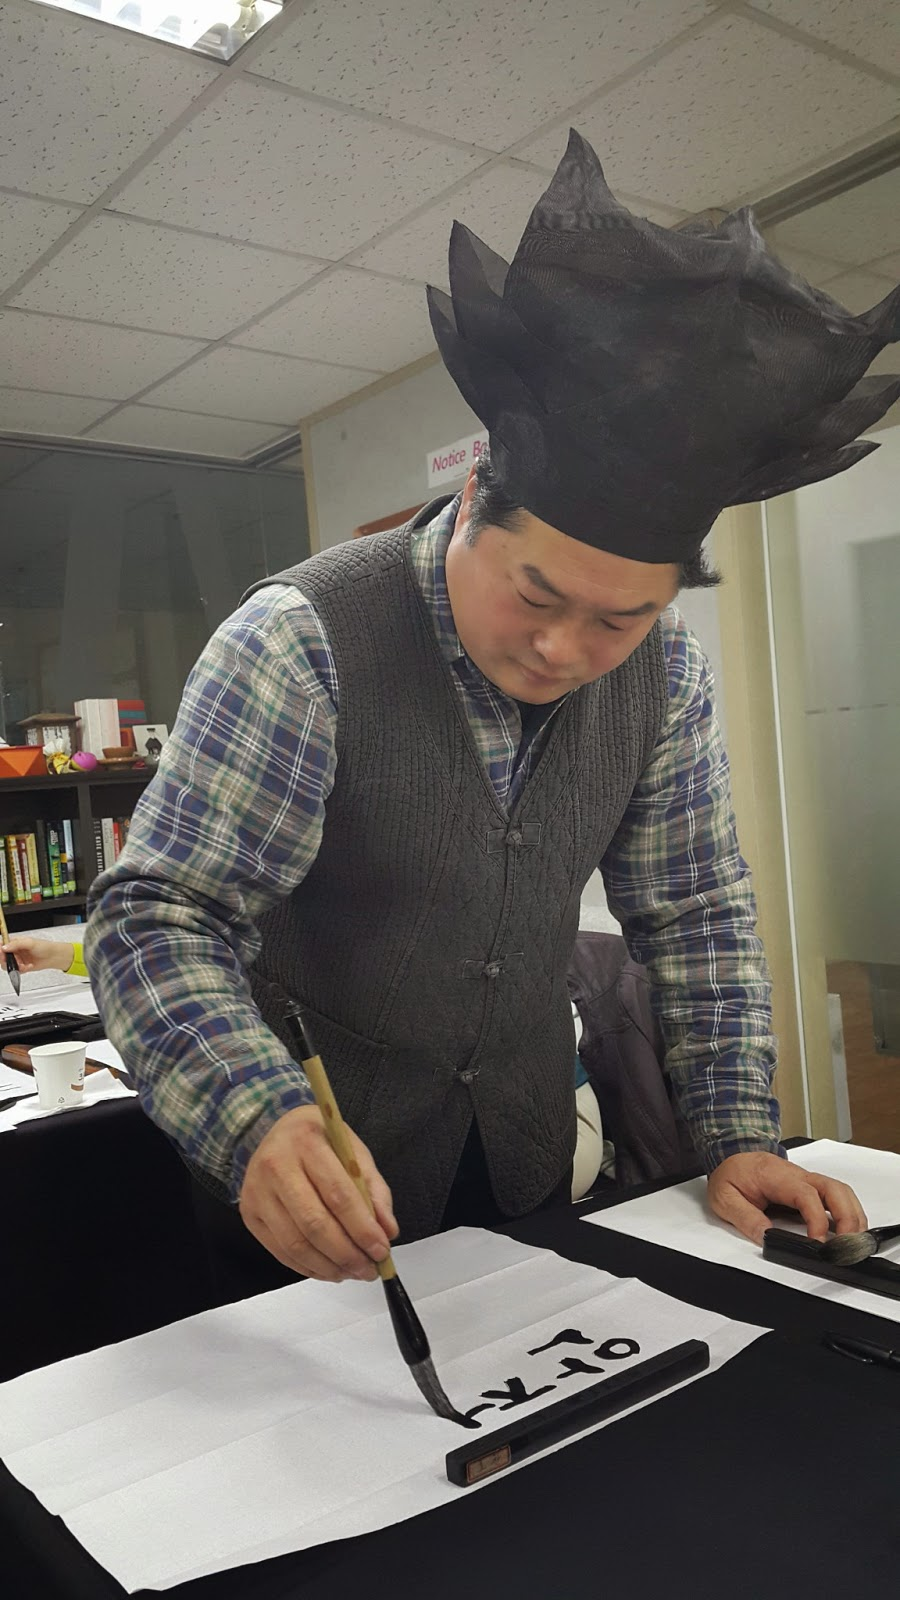 Korean calligraphy done by the expert